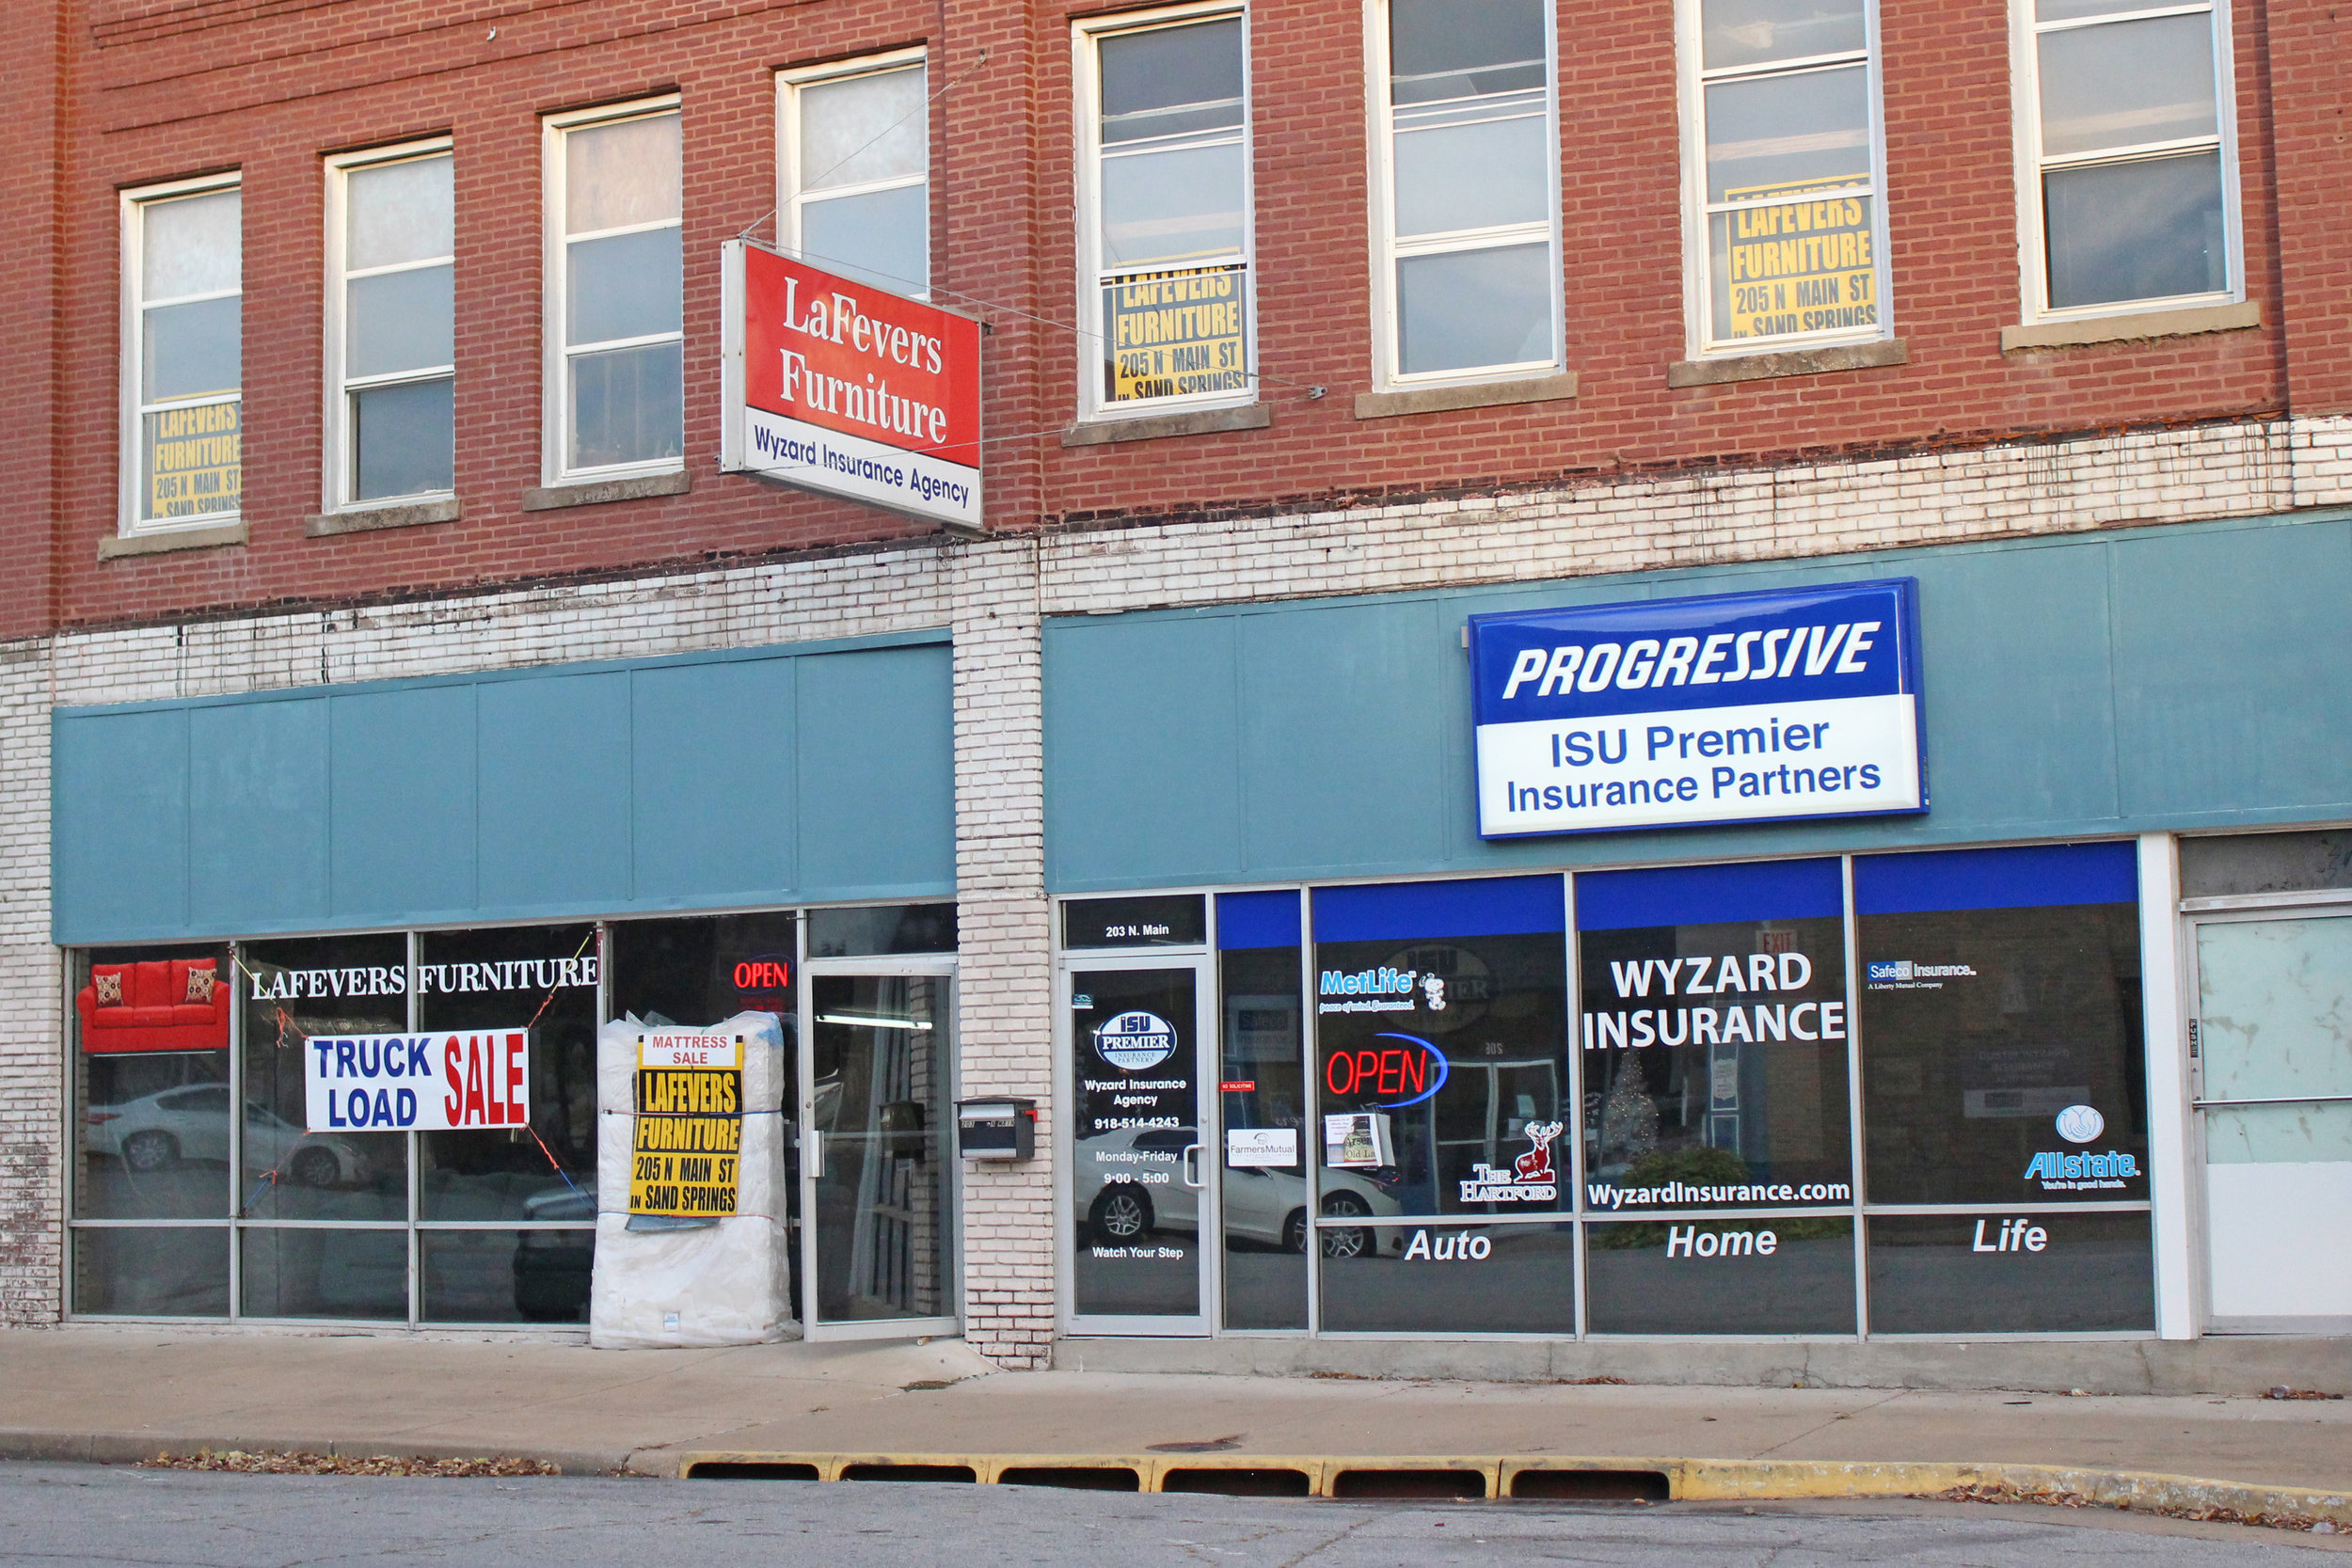 lafevers furniture - downtown 205 north main street